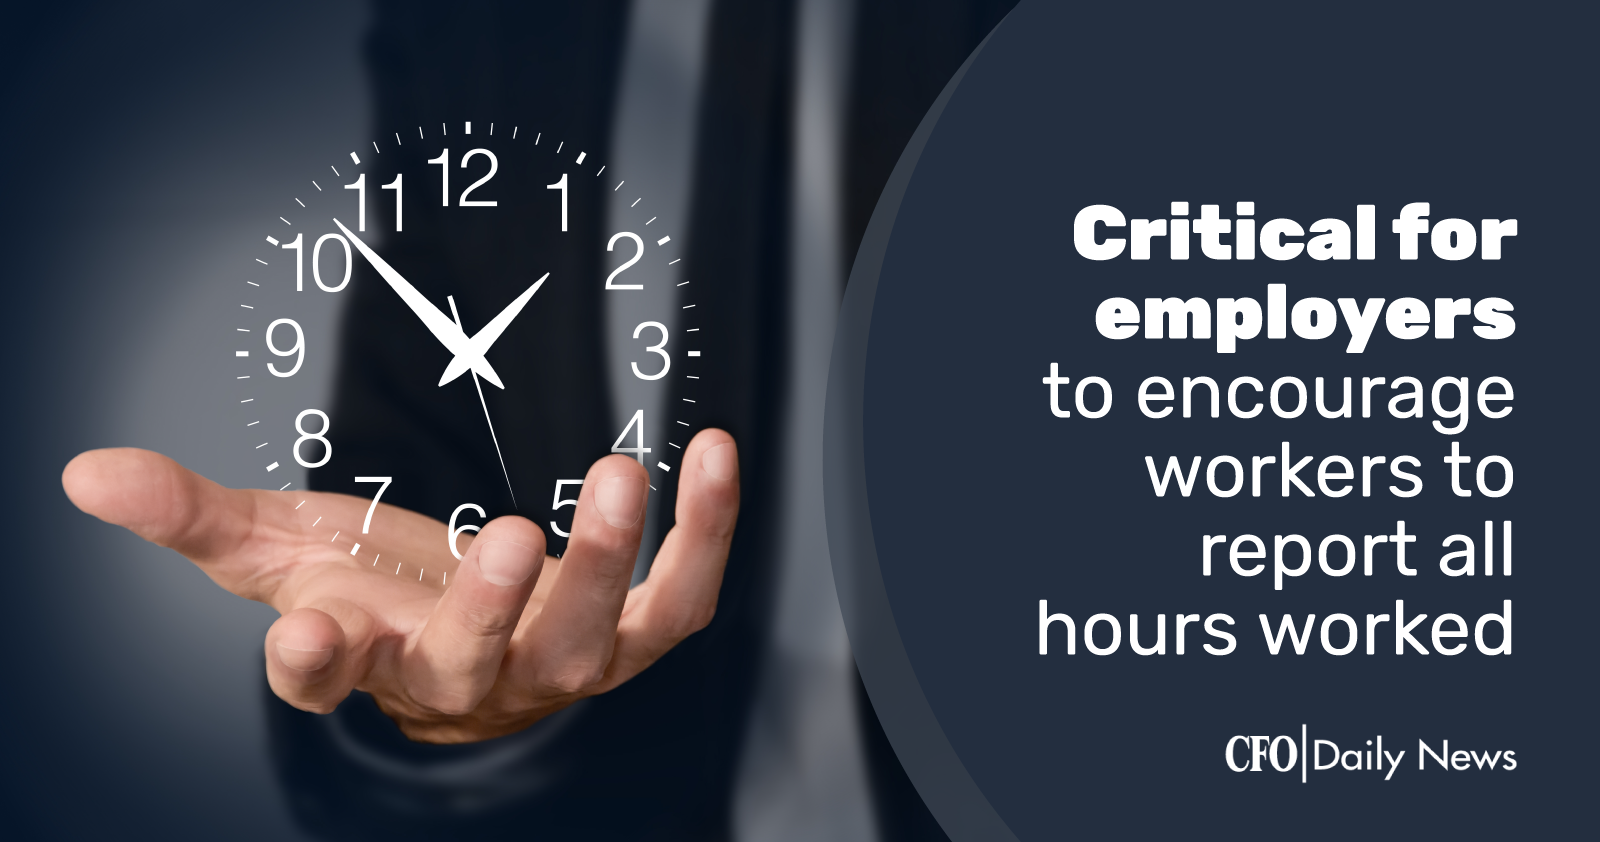 critical for employers to encourage workers to report all hours worked